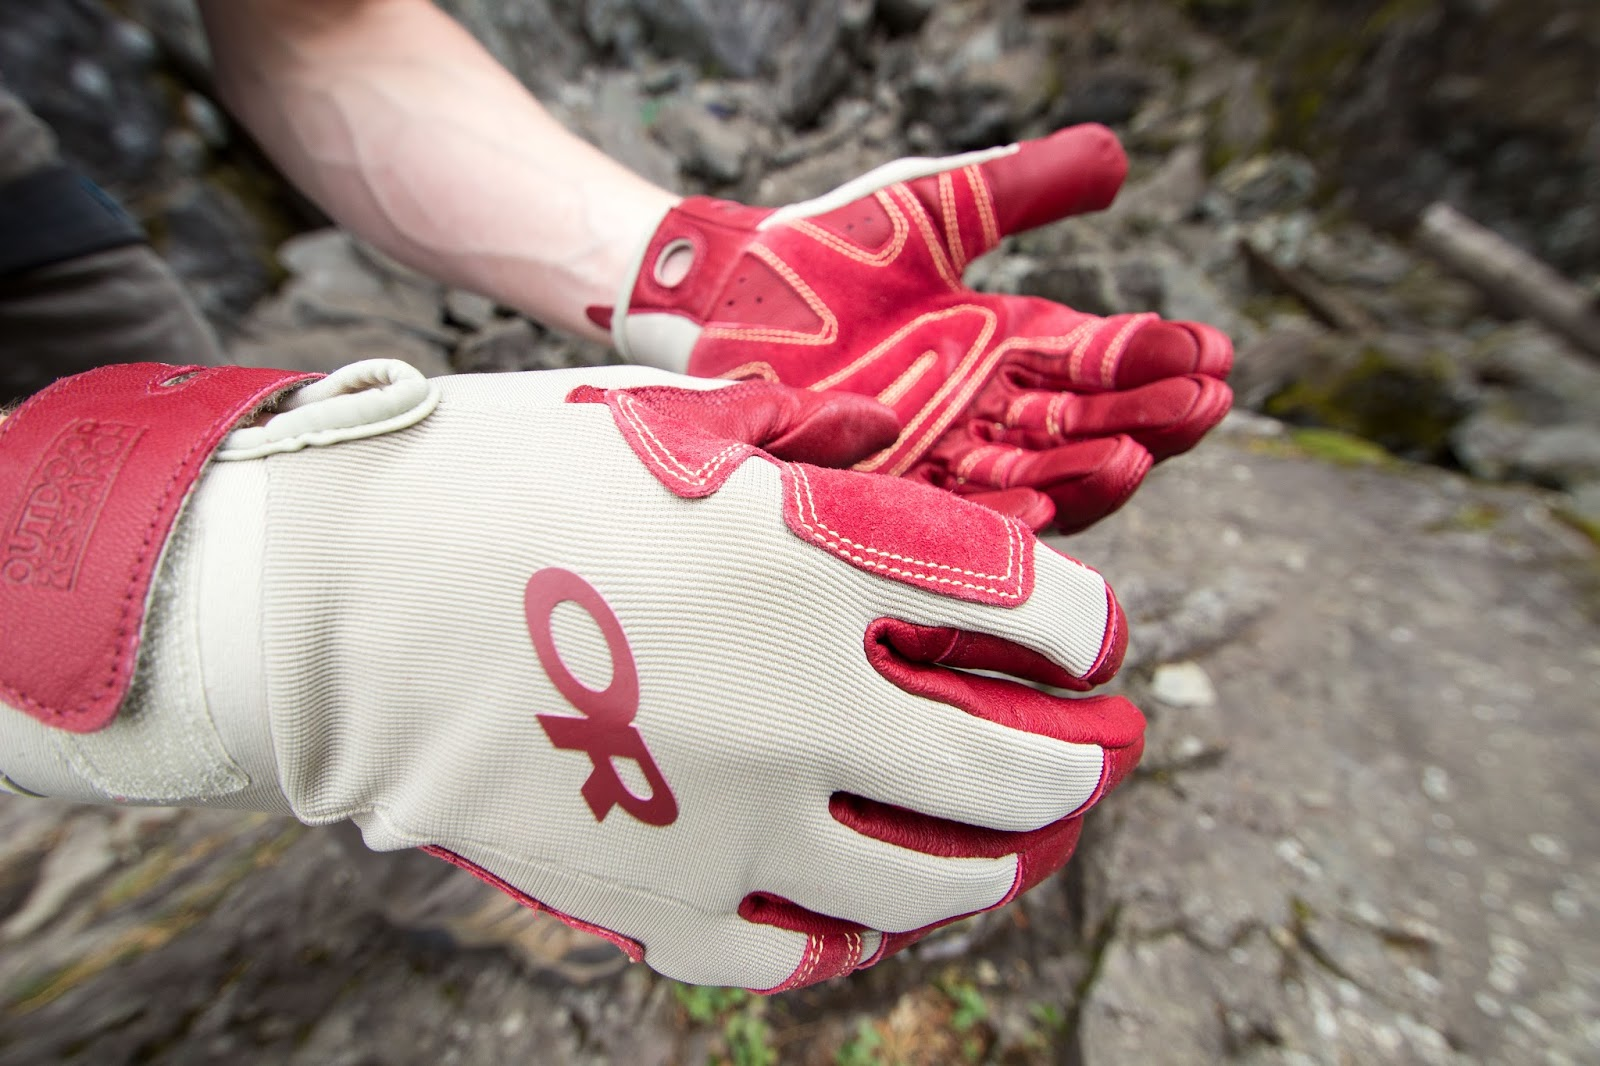 Very mens gloves - The Backside Of The Gloves Are Thin And Flexible To Allow For A Very Comfortable Fit